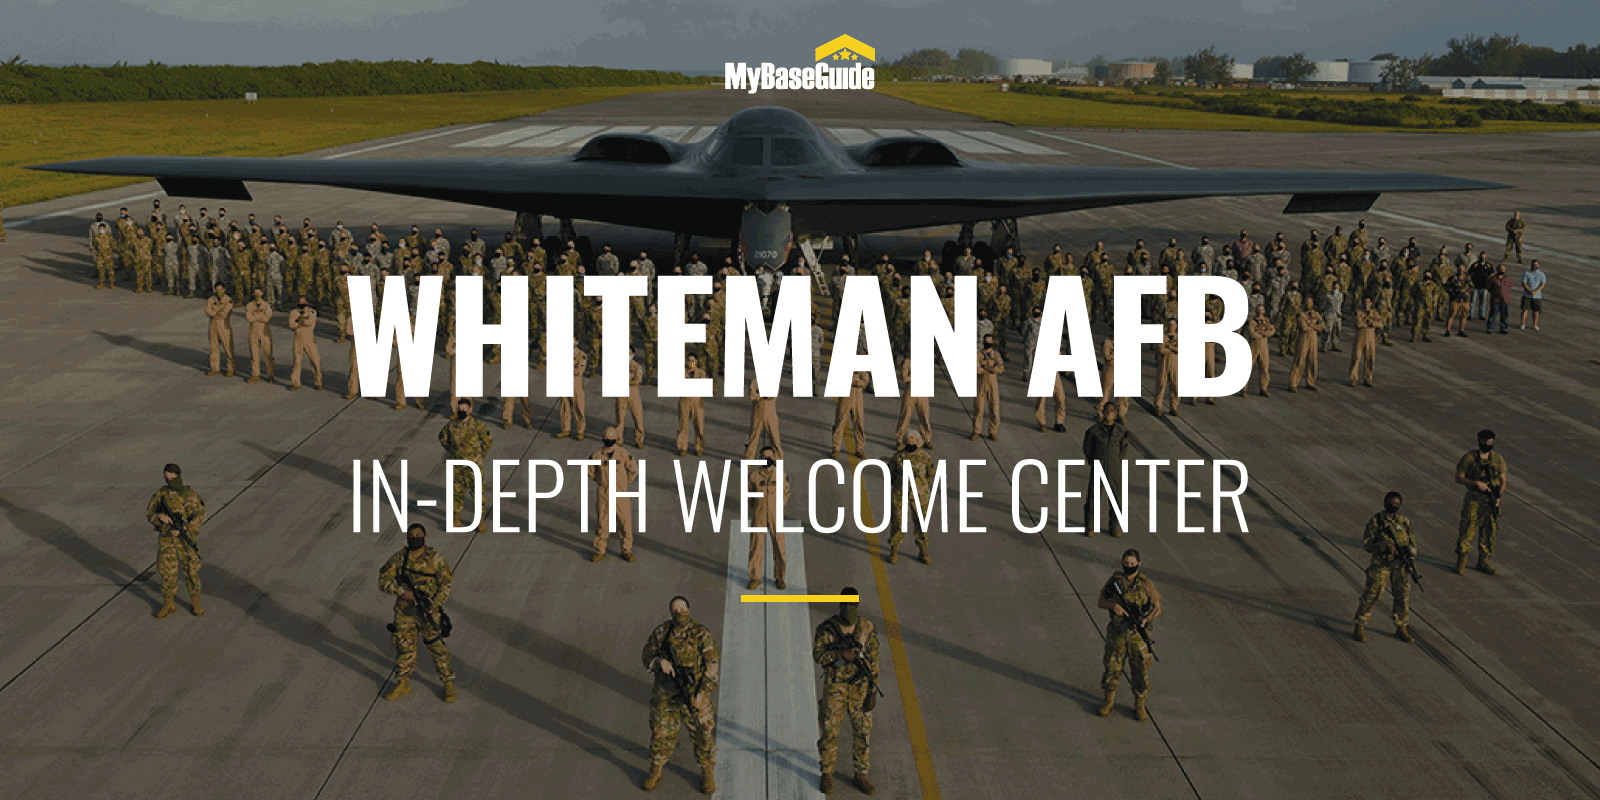 Whiteman Air Force Base: In-Depth Welcome Center